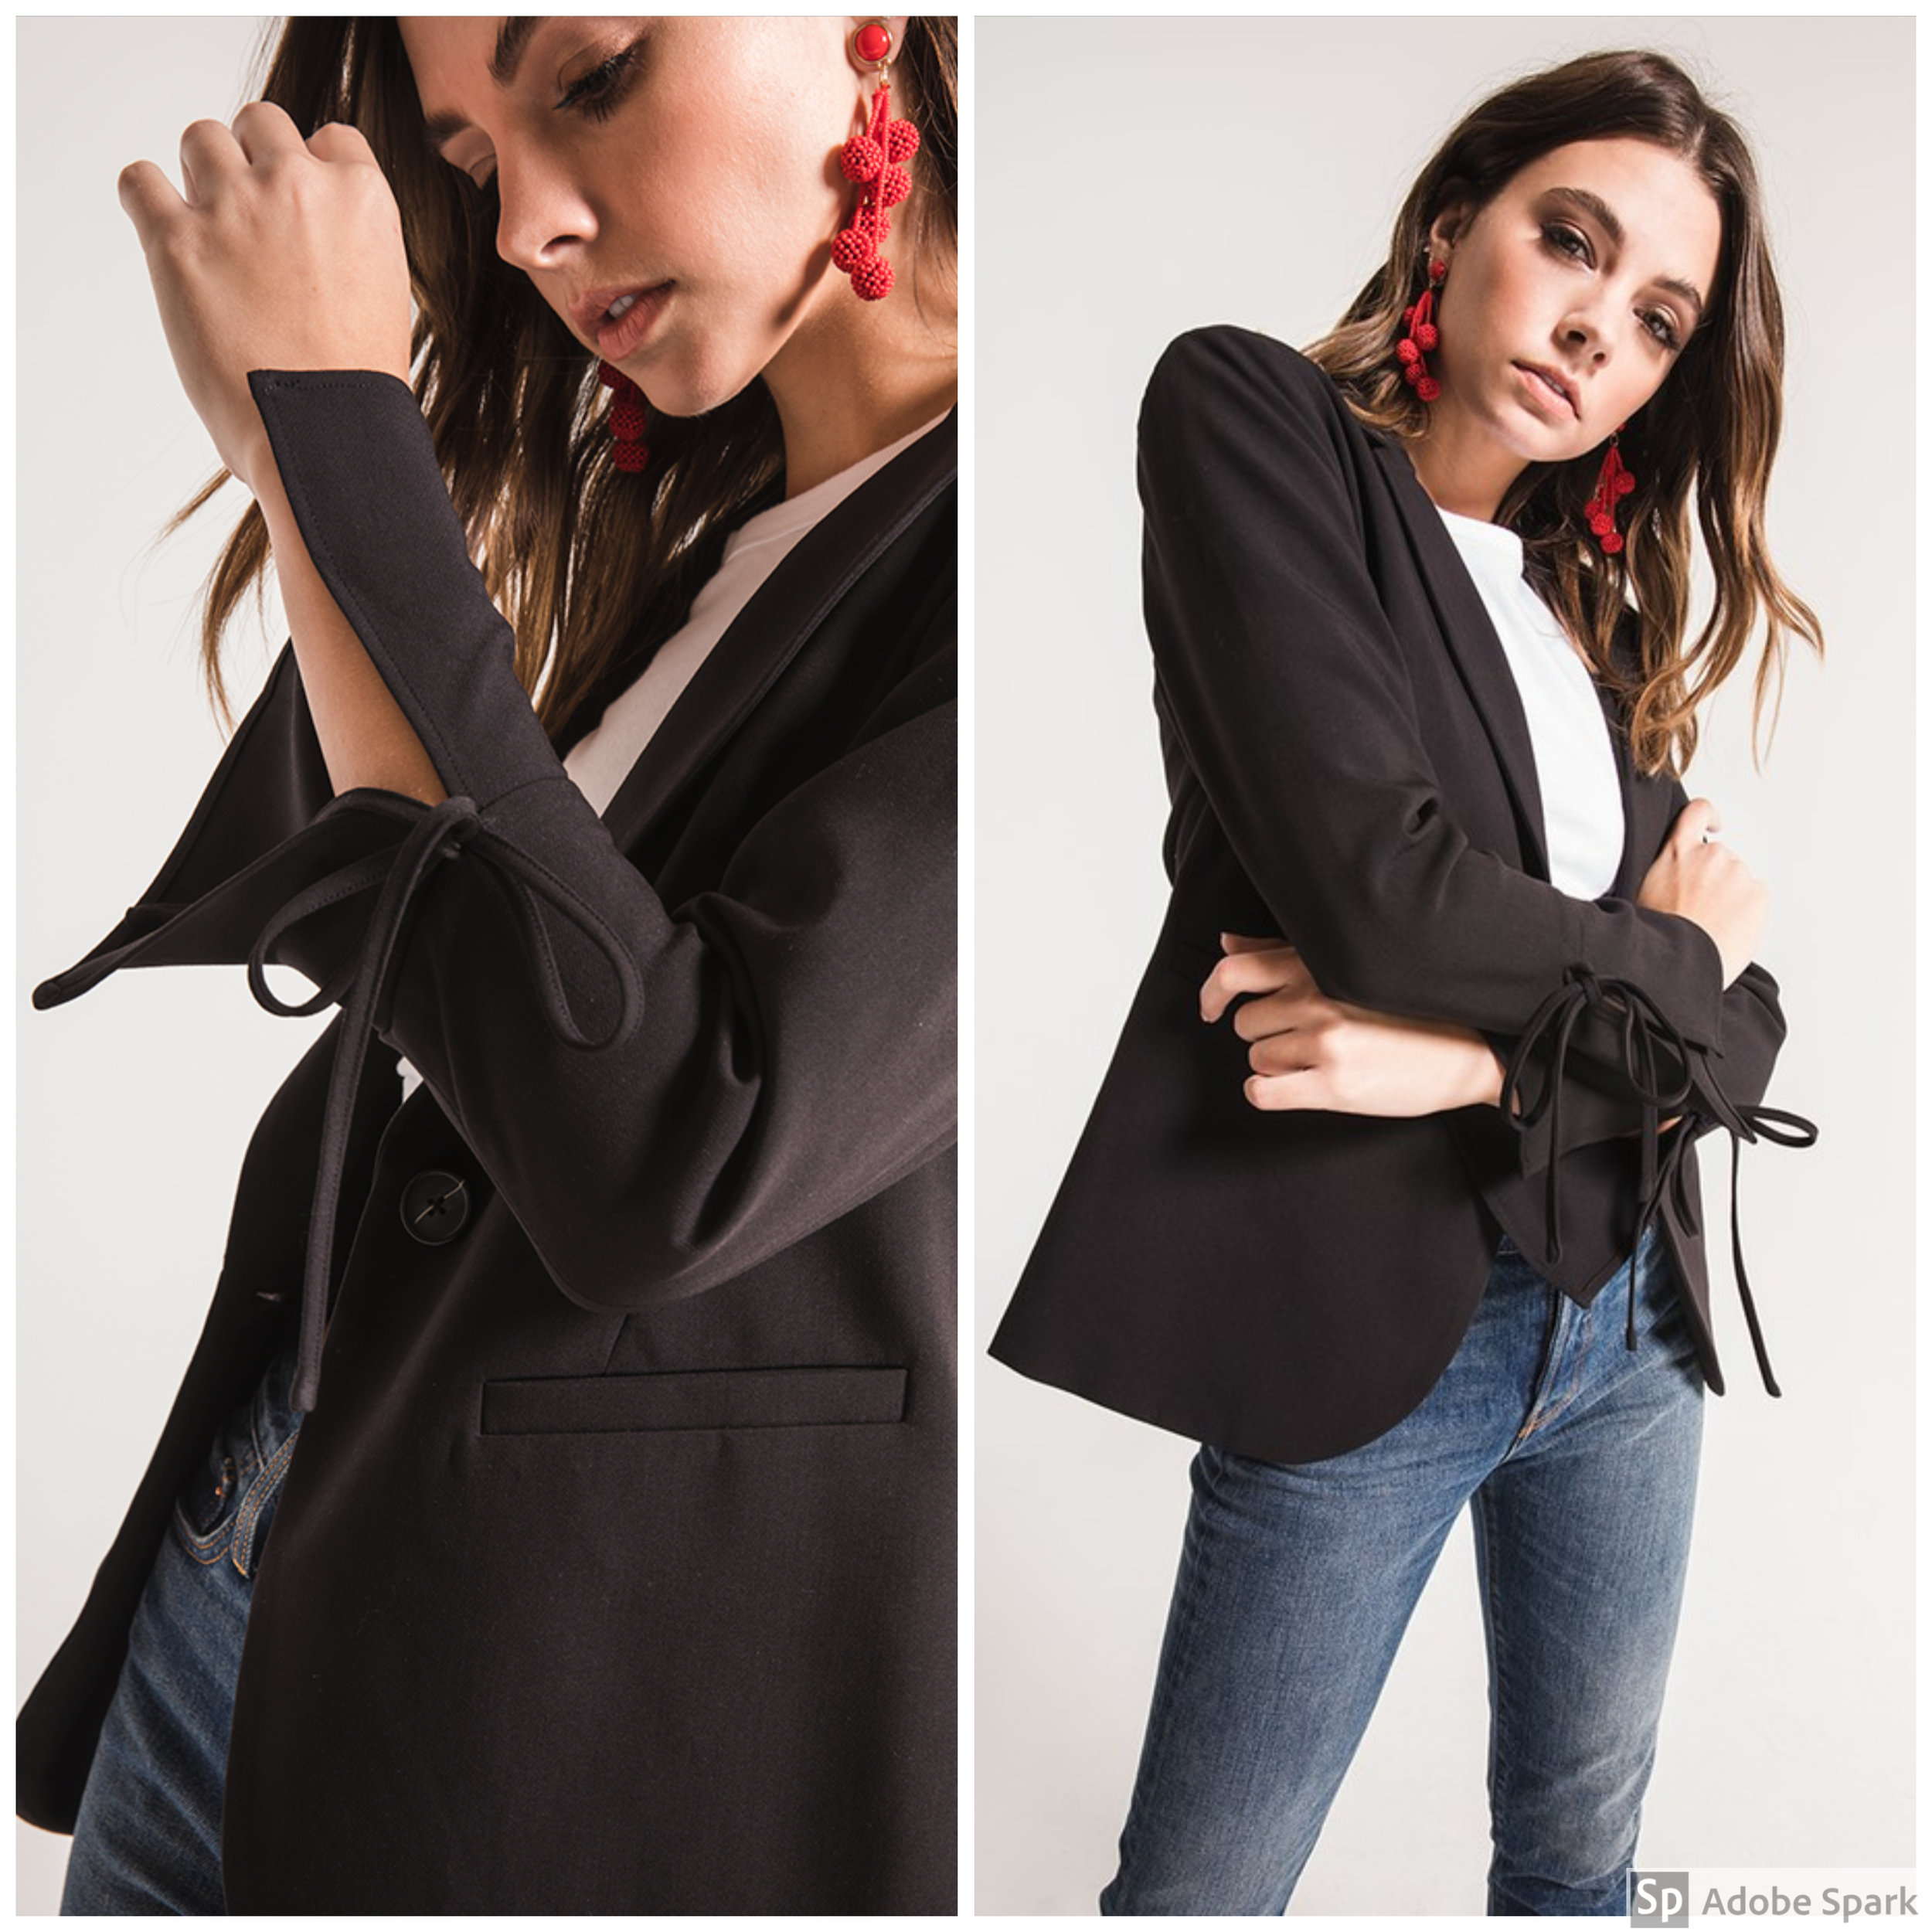 Woven Blazer - Spotlight Features: long bell sleeves with self-tie detailsWhy It's a Favorite: This classic fashion staple got an upgrade! We love the statement sleeves and unique details!